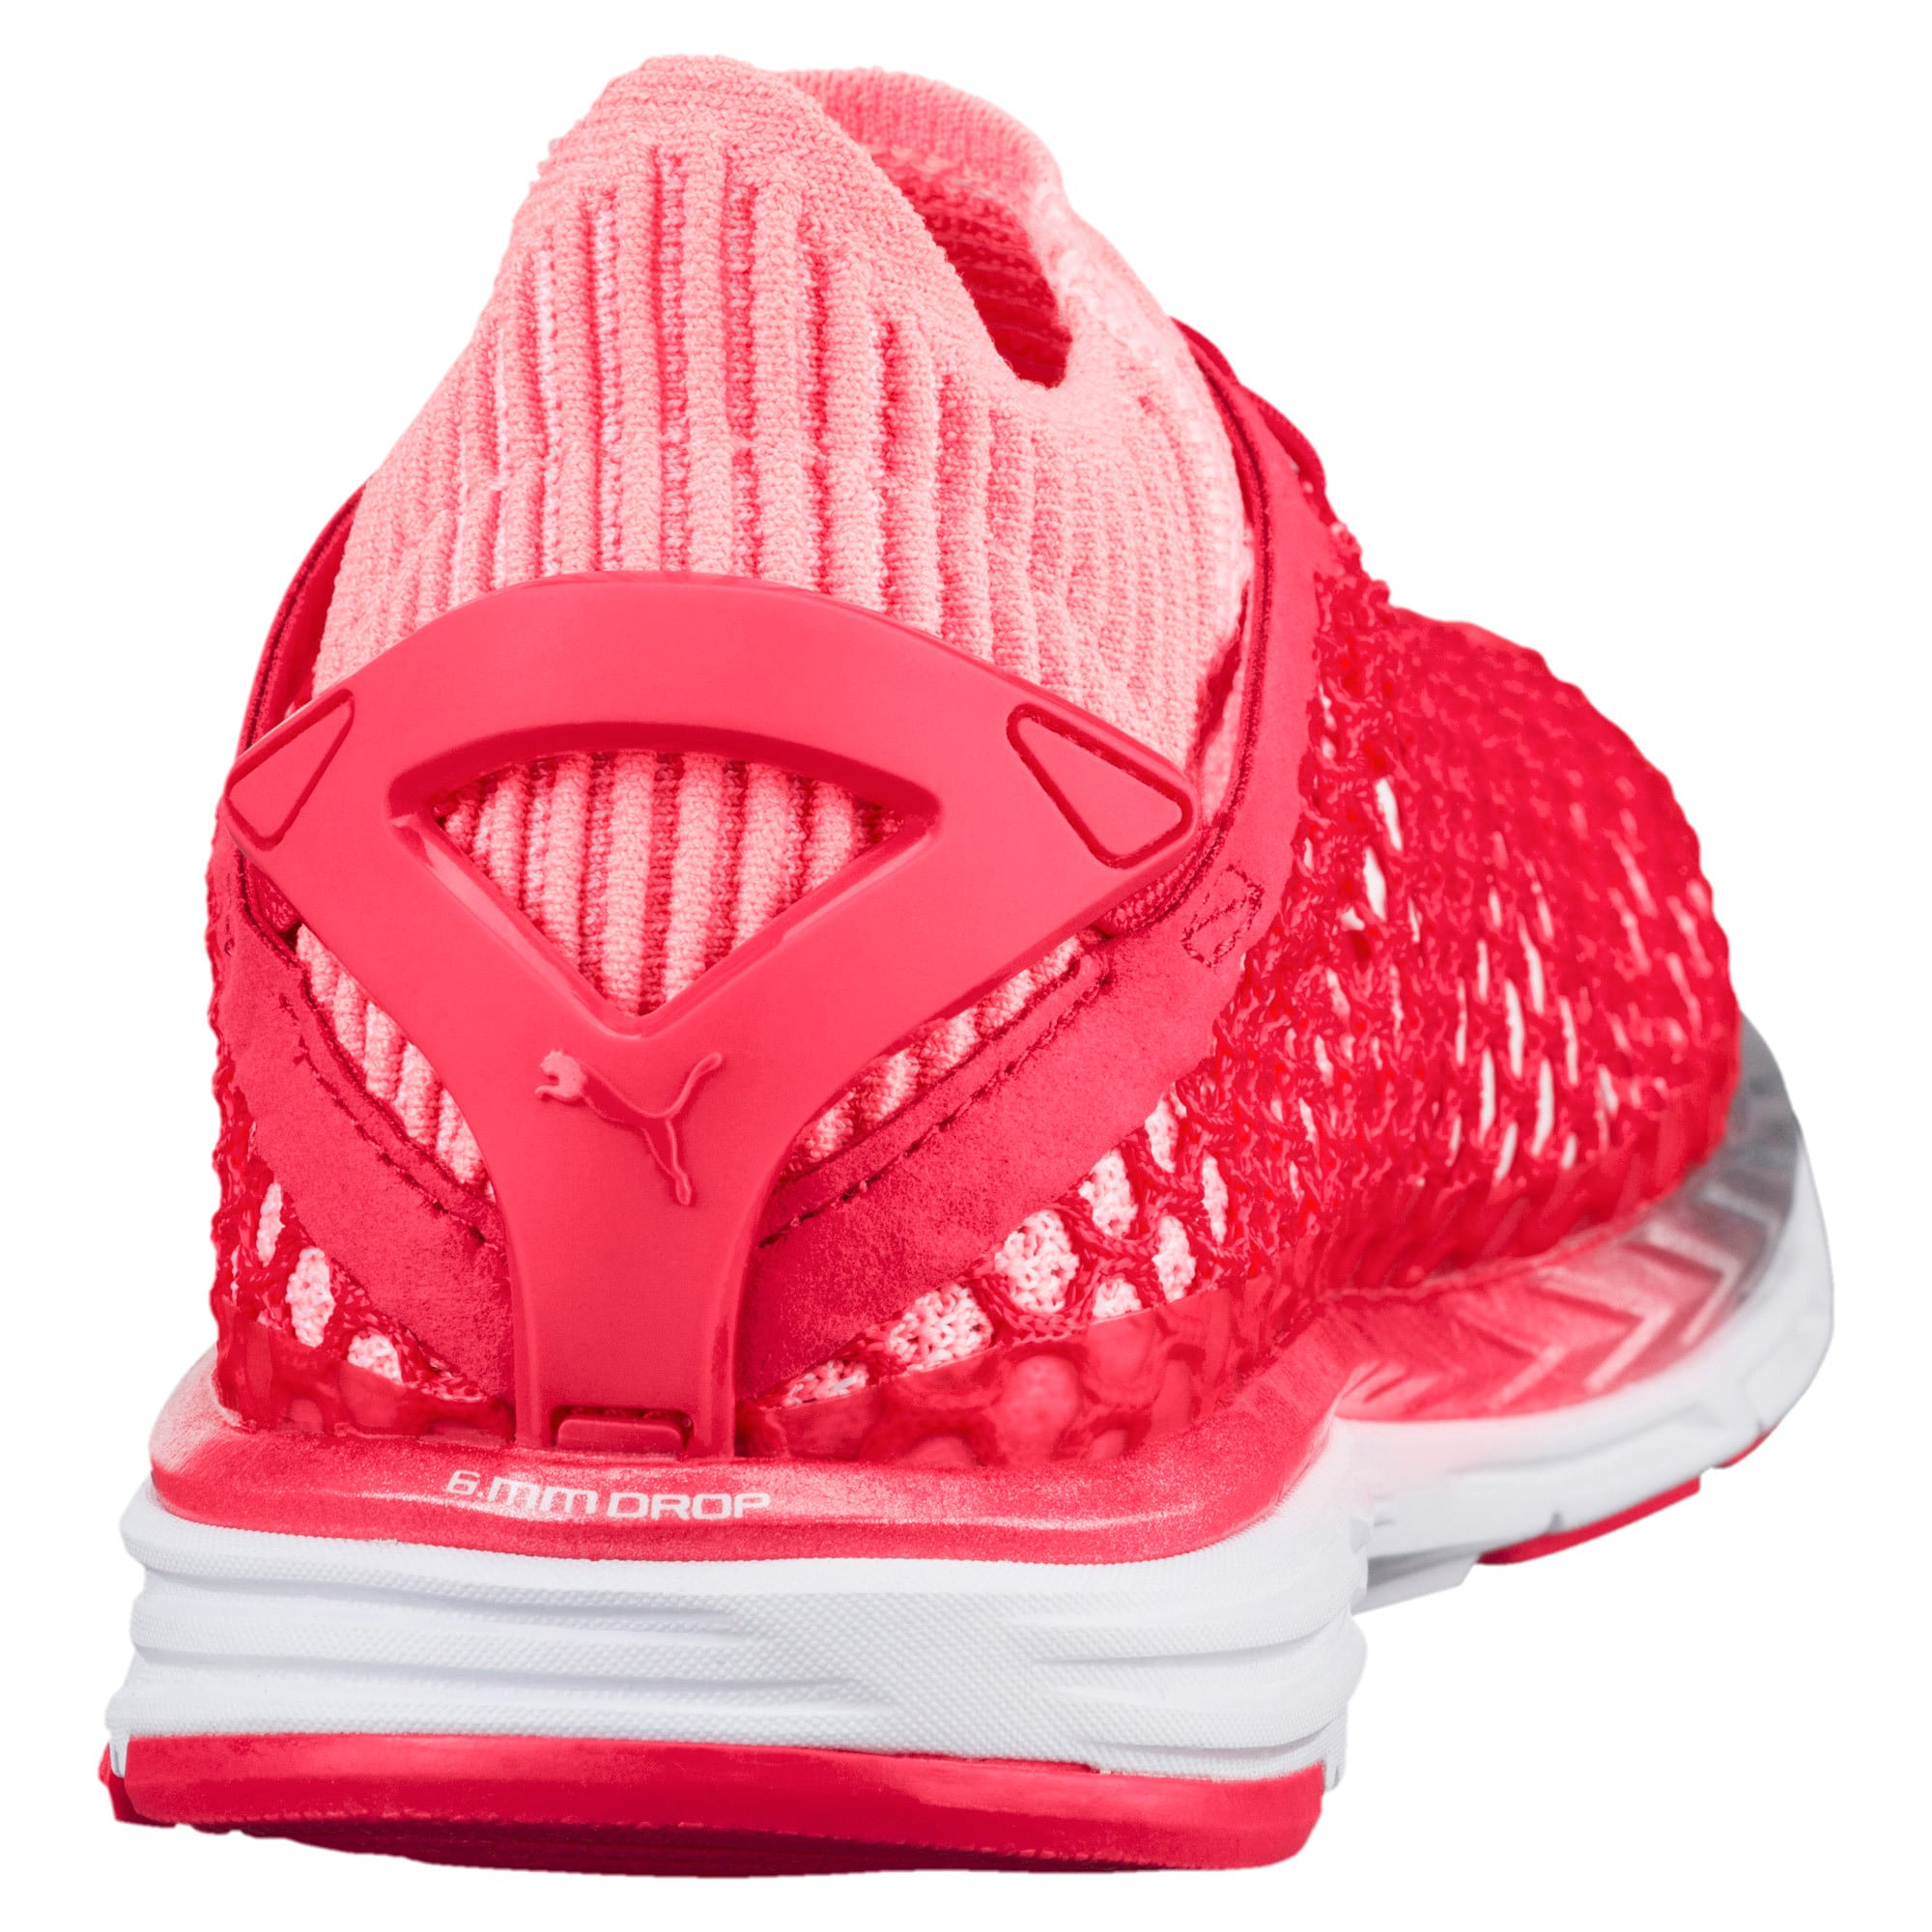 Thumbnail 4 of Speed IGNITE NETFIT 2 Women's Running Shoes, Pink-Fluo Peach-White, medium-IND